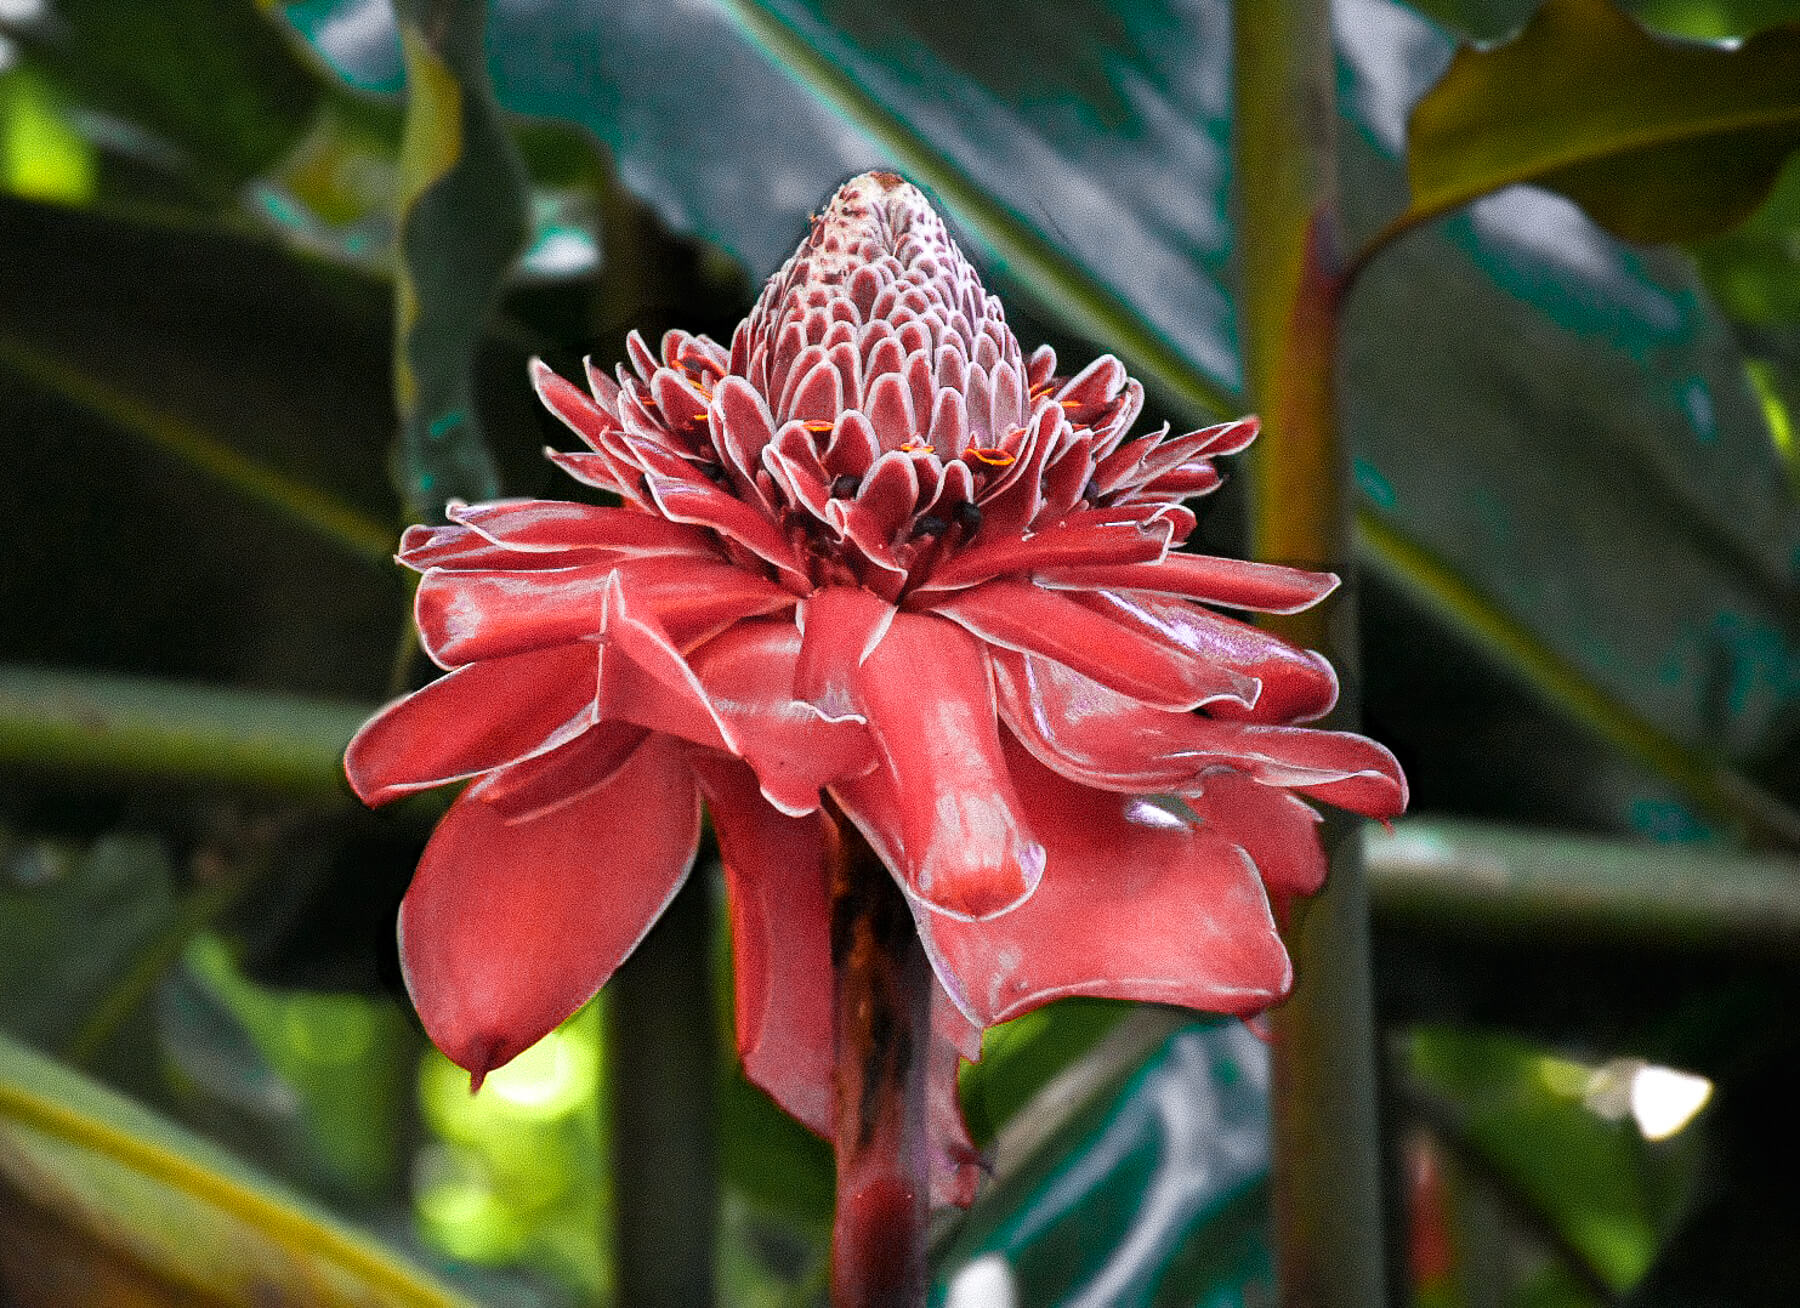 Close up of a beautiful red flower with green palm leaves in the background